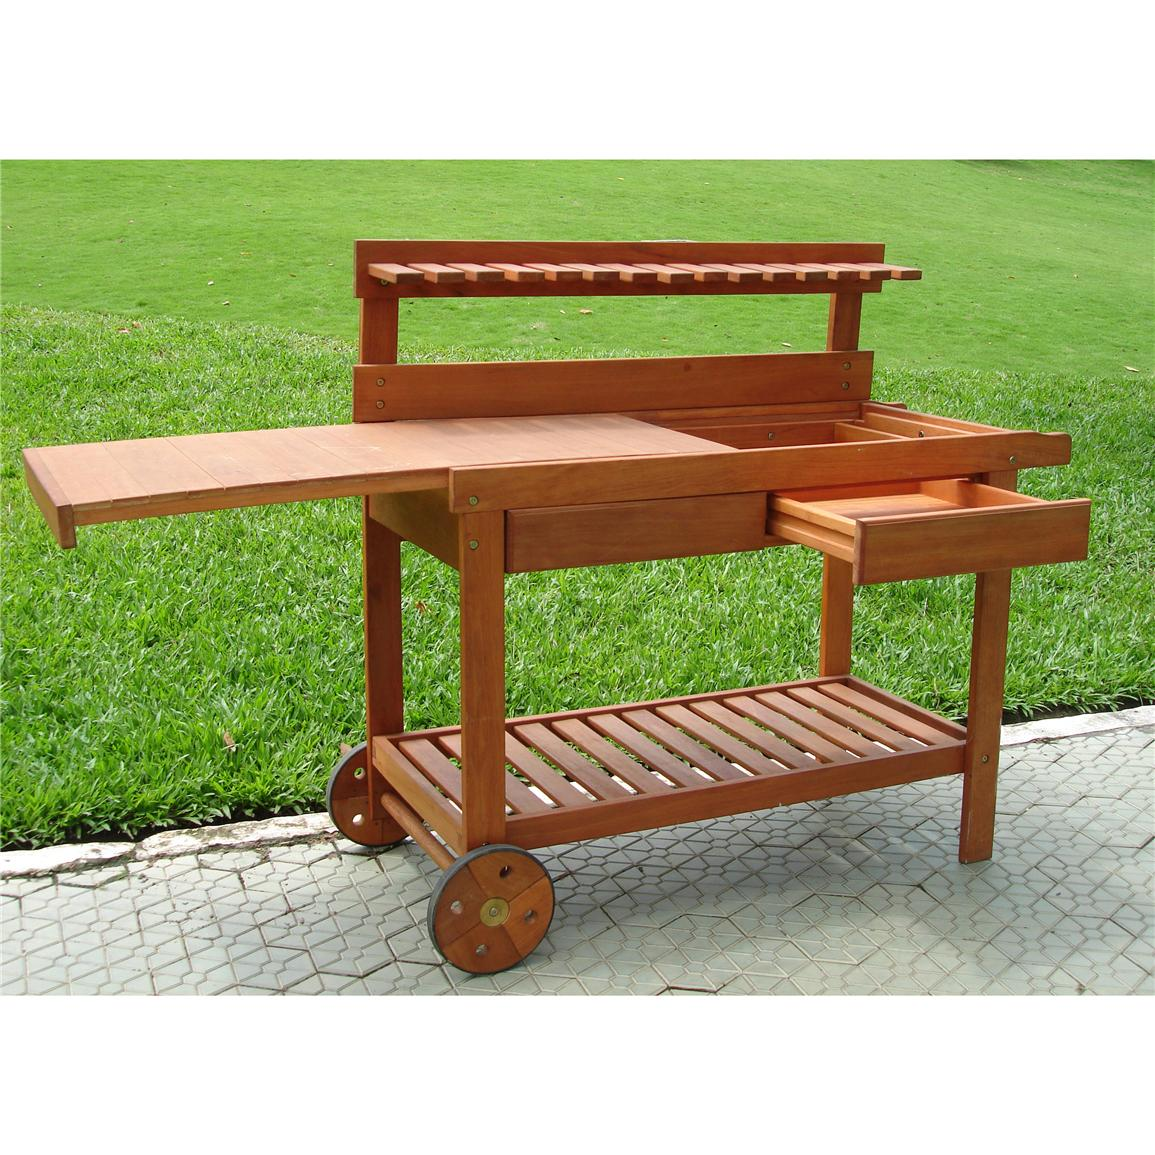 Vifah Wood Potting Bench 218679 Patio Furniture At Sportsman 39 S Guide